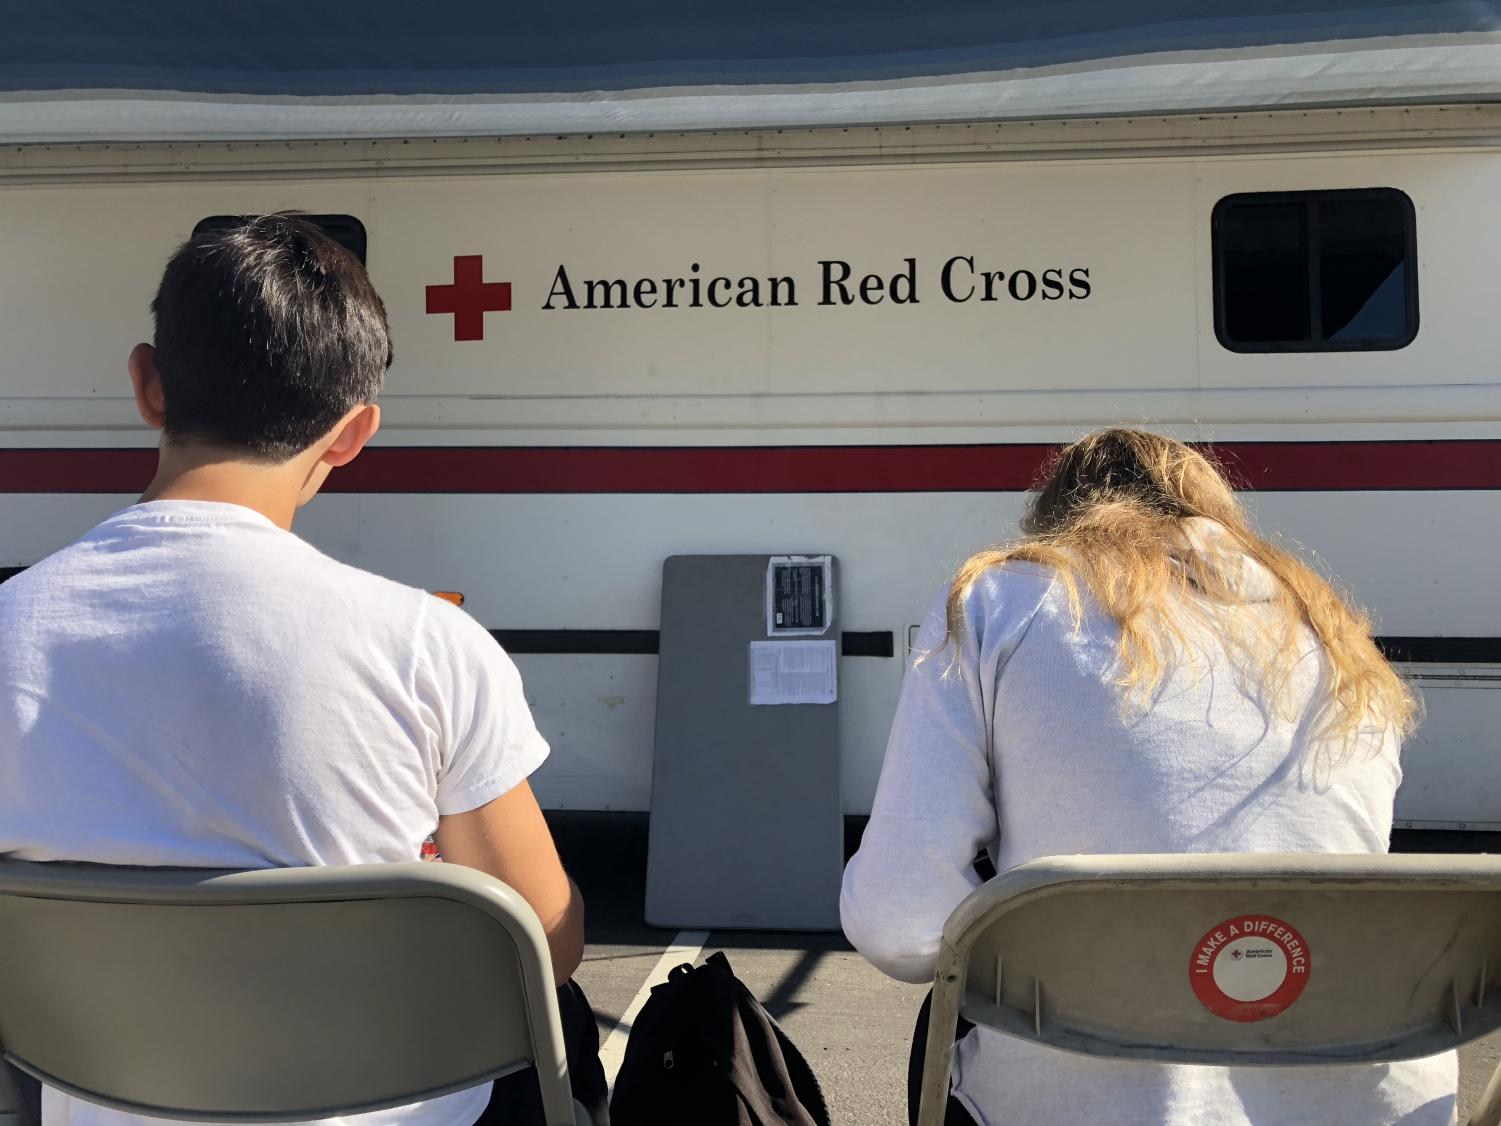 Students+fill+out+forms+and+wait+in+front+of+the+American+Red+Cross+blood+drive+bus+for+their+turn+to+give+blood.+On+Wednesday%2C+Dec.+19%2C+students+left+classes+throughout+the+day+to+donate+their+blood+to+the+cause.